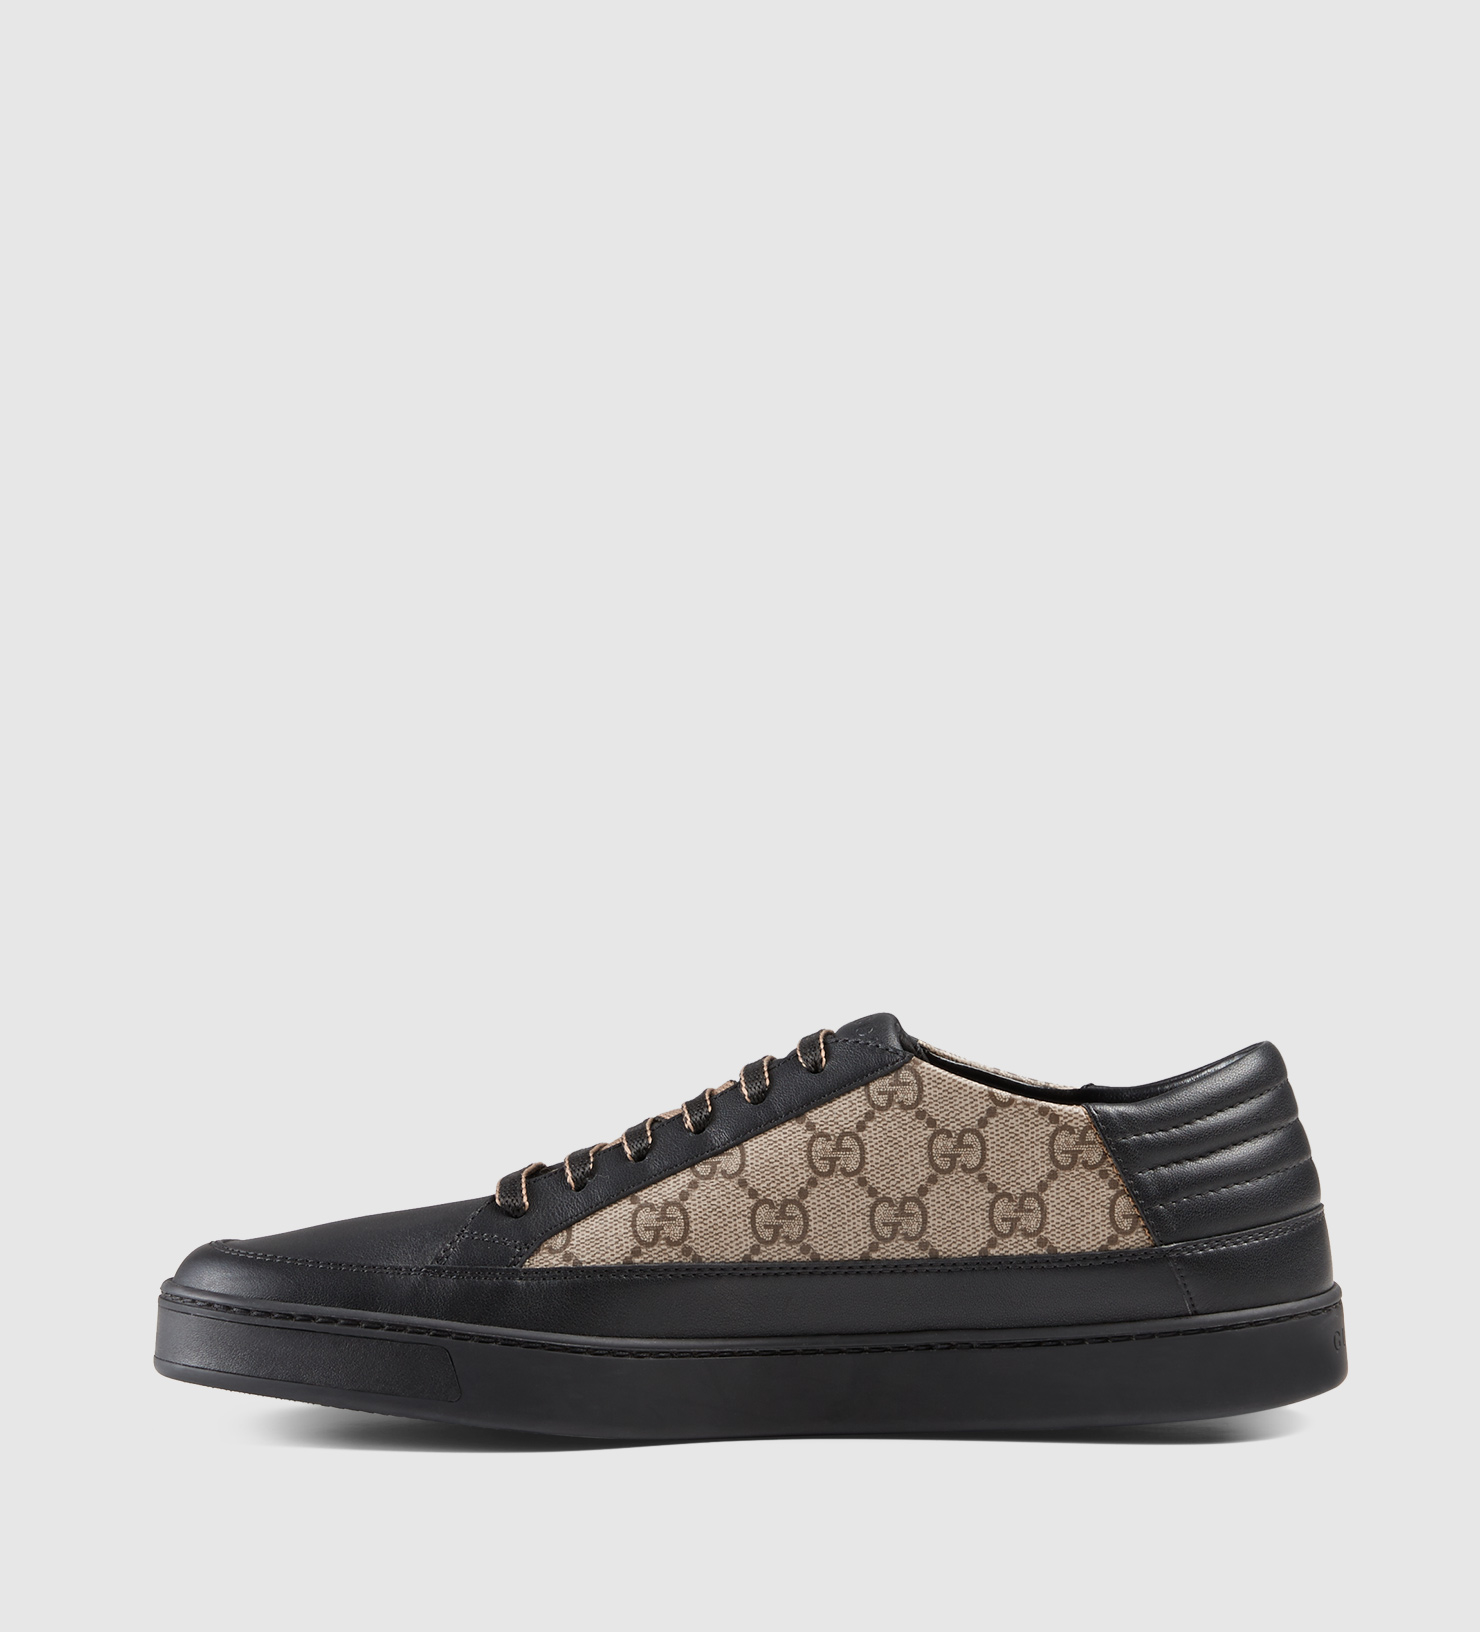 2a141d4e115 Gucci Gg Supreme And Leather Low-top Sneaker in Black for Men - Lyst